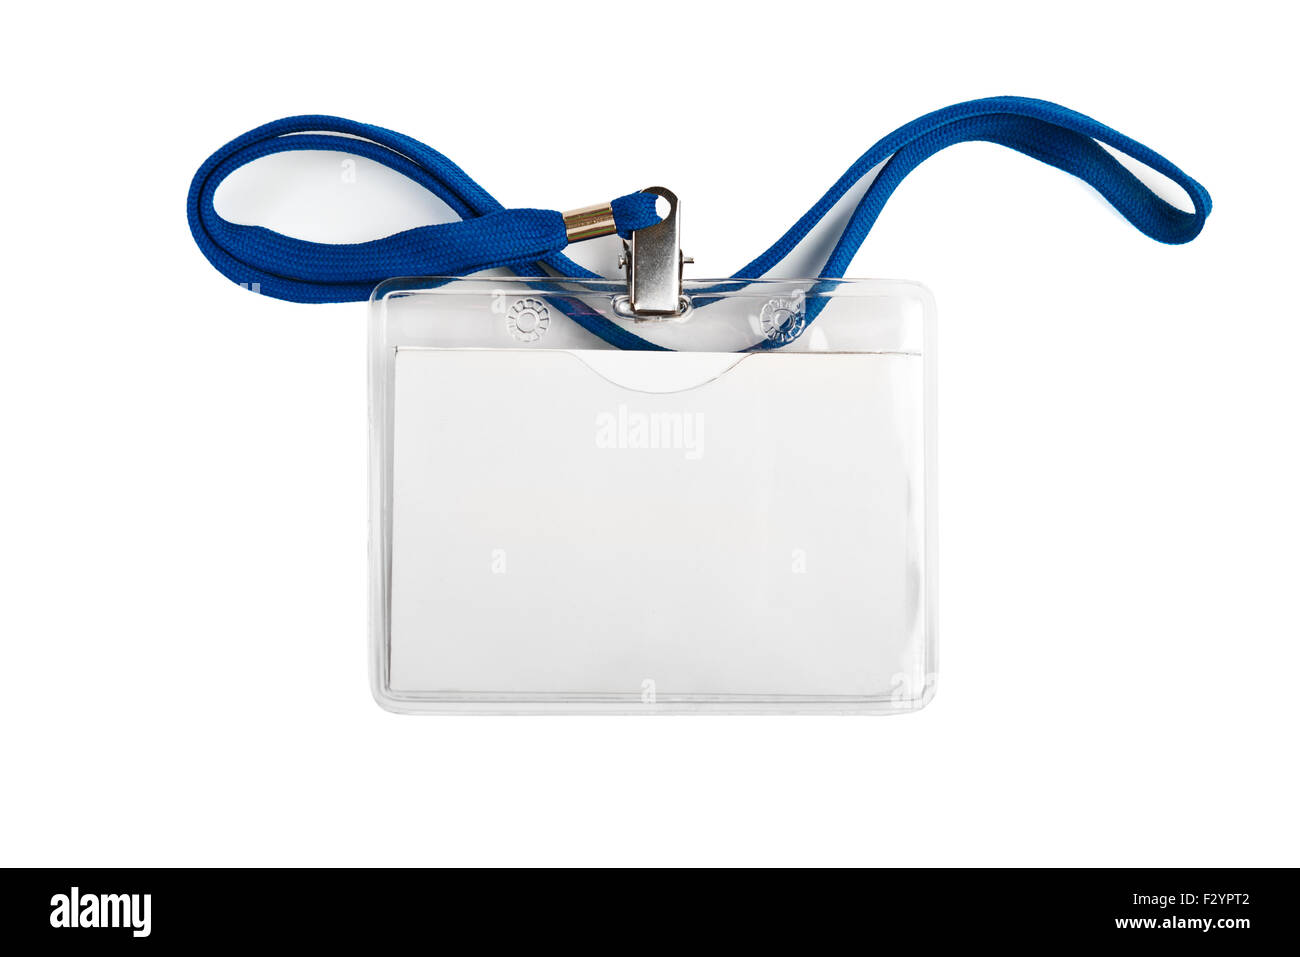 Badge identification white blank plastic id card  isolated - Stock Image